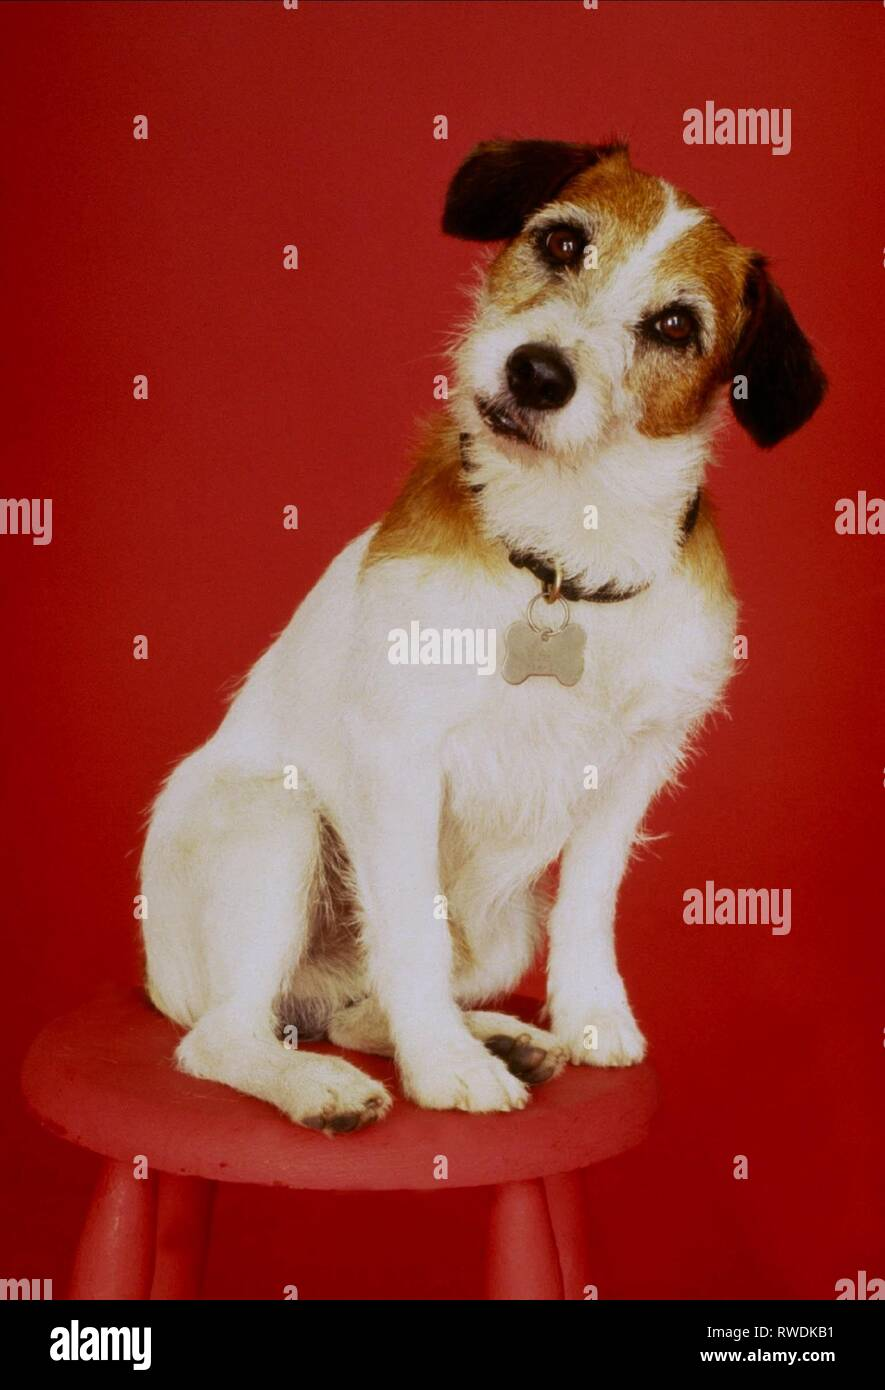 EDDIE THE DOG, FRASIER, 1993 - Stock Image